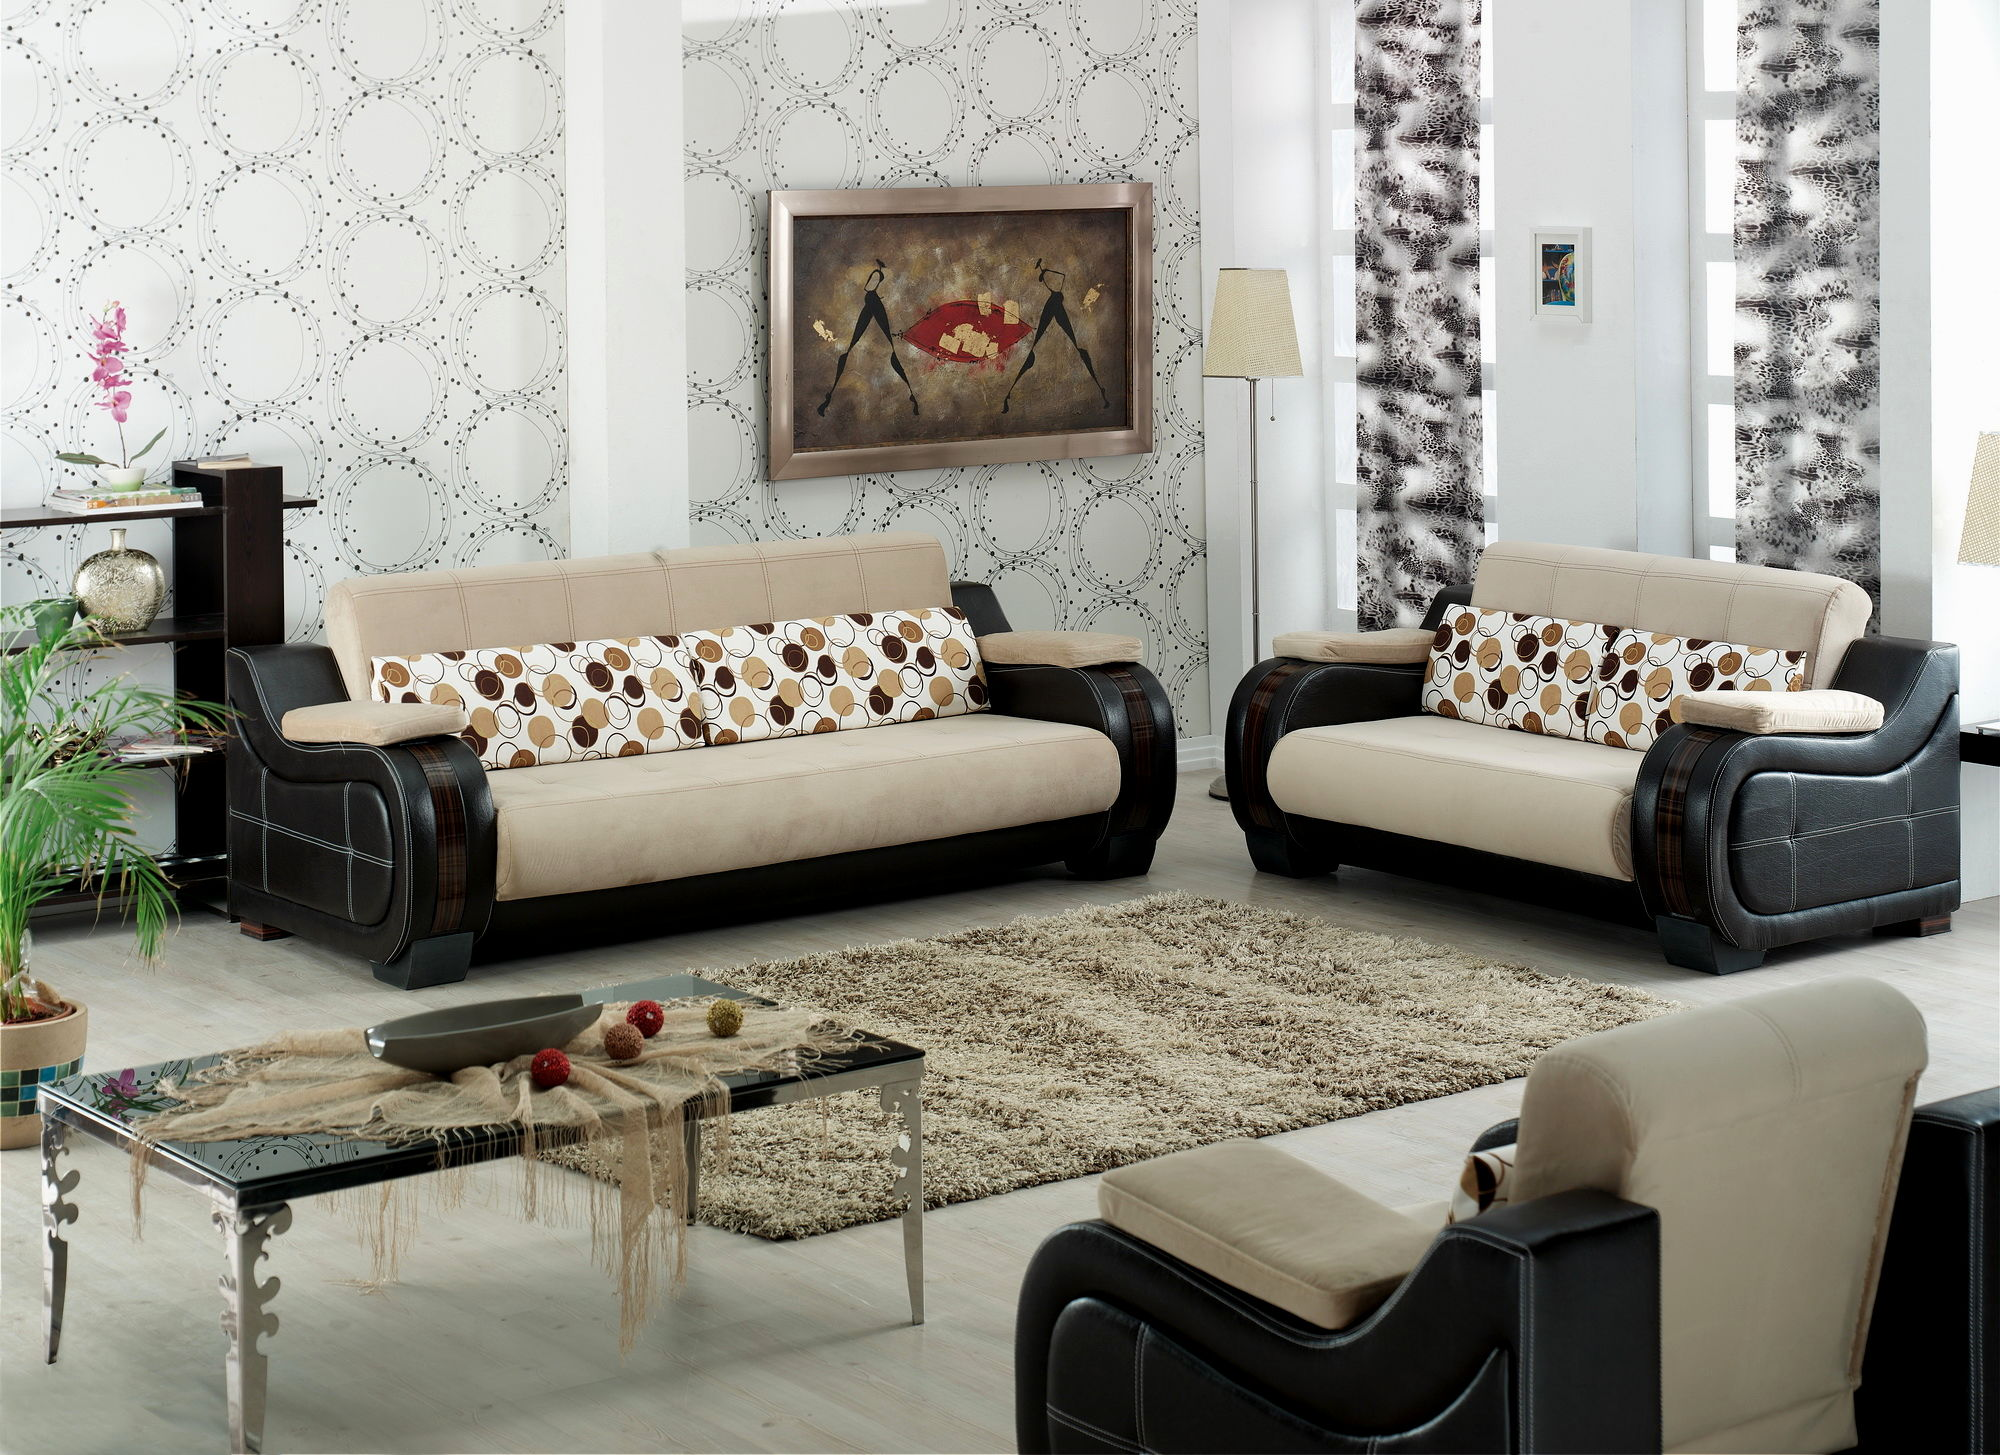 fantastic brown leather sofa concept-Fantastic Brown Leather sofa Decoration